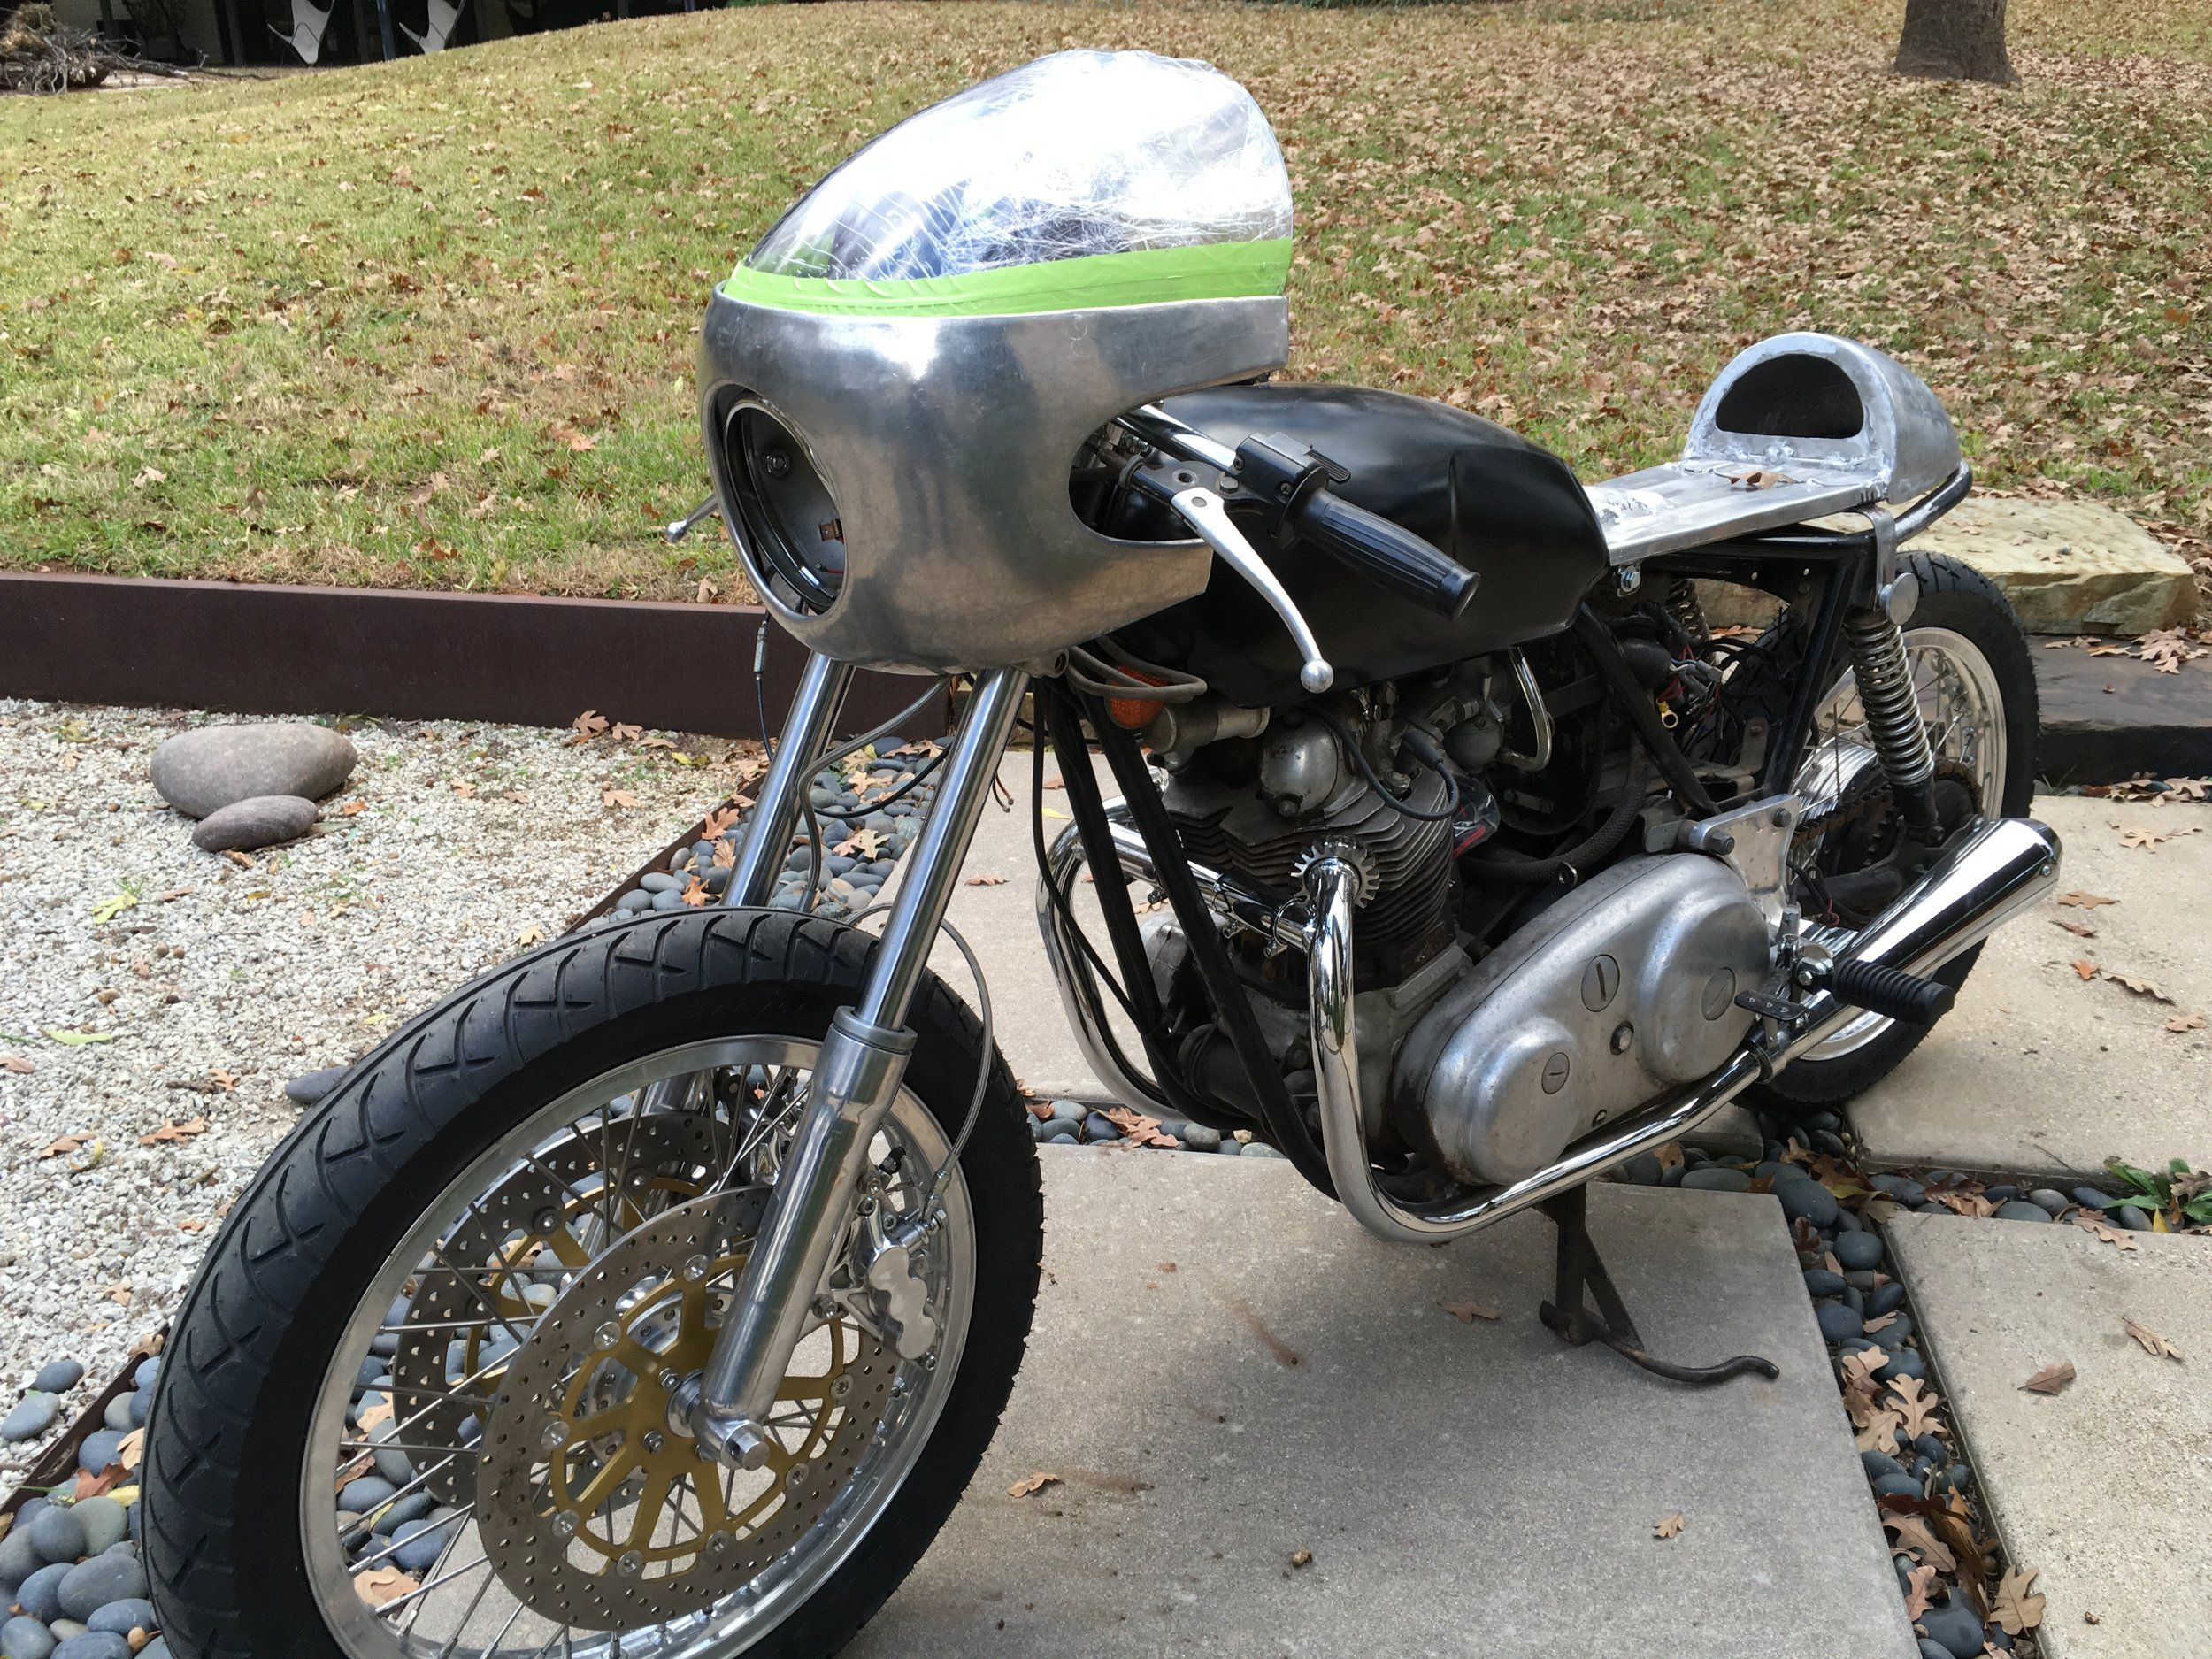 Just rolling out the 1974 Norton Commando with the fairing mounted for the first time.